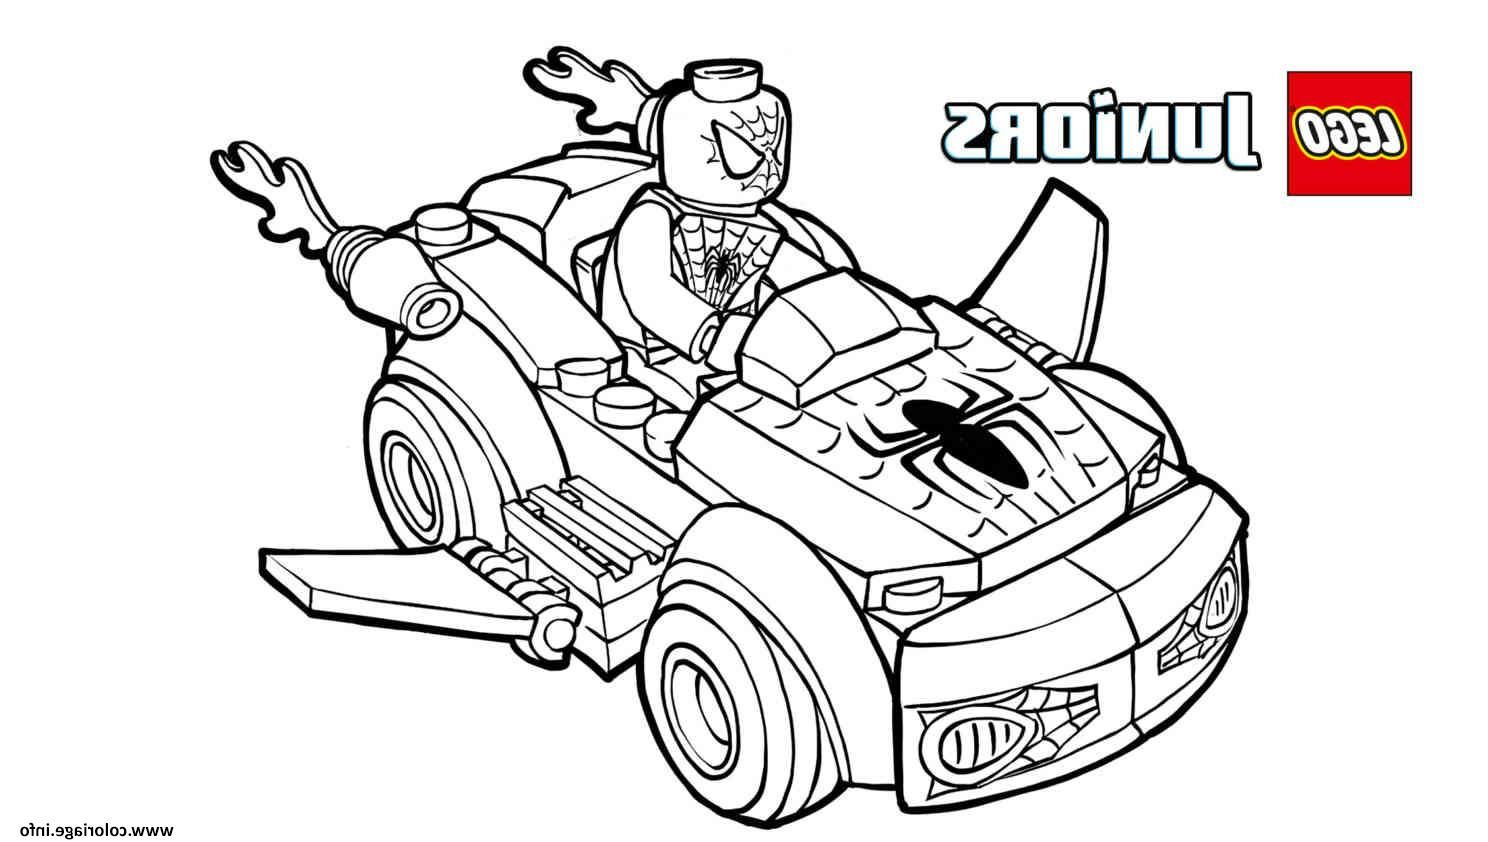 9 Regulier Coloriage Lego Photos Coloriage Lego Coloriage